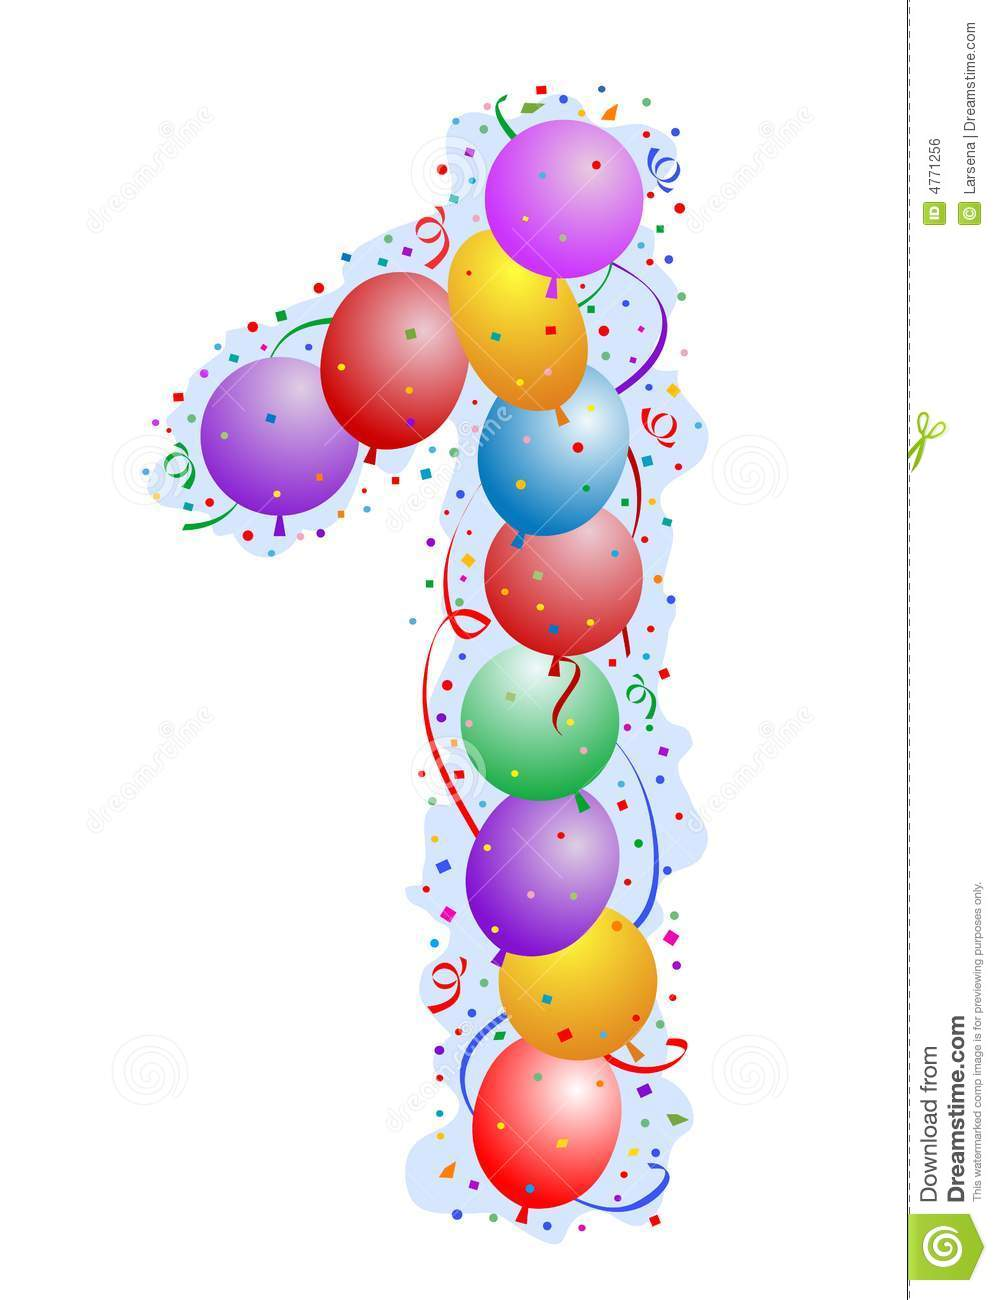 Balloons and confetti number 1 royalty free stock image image 4771256